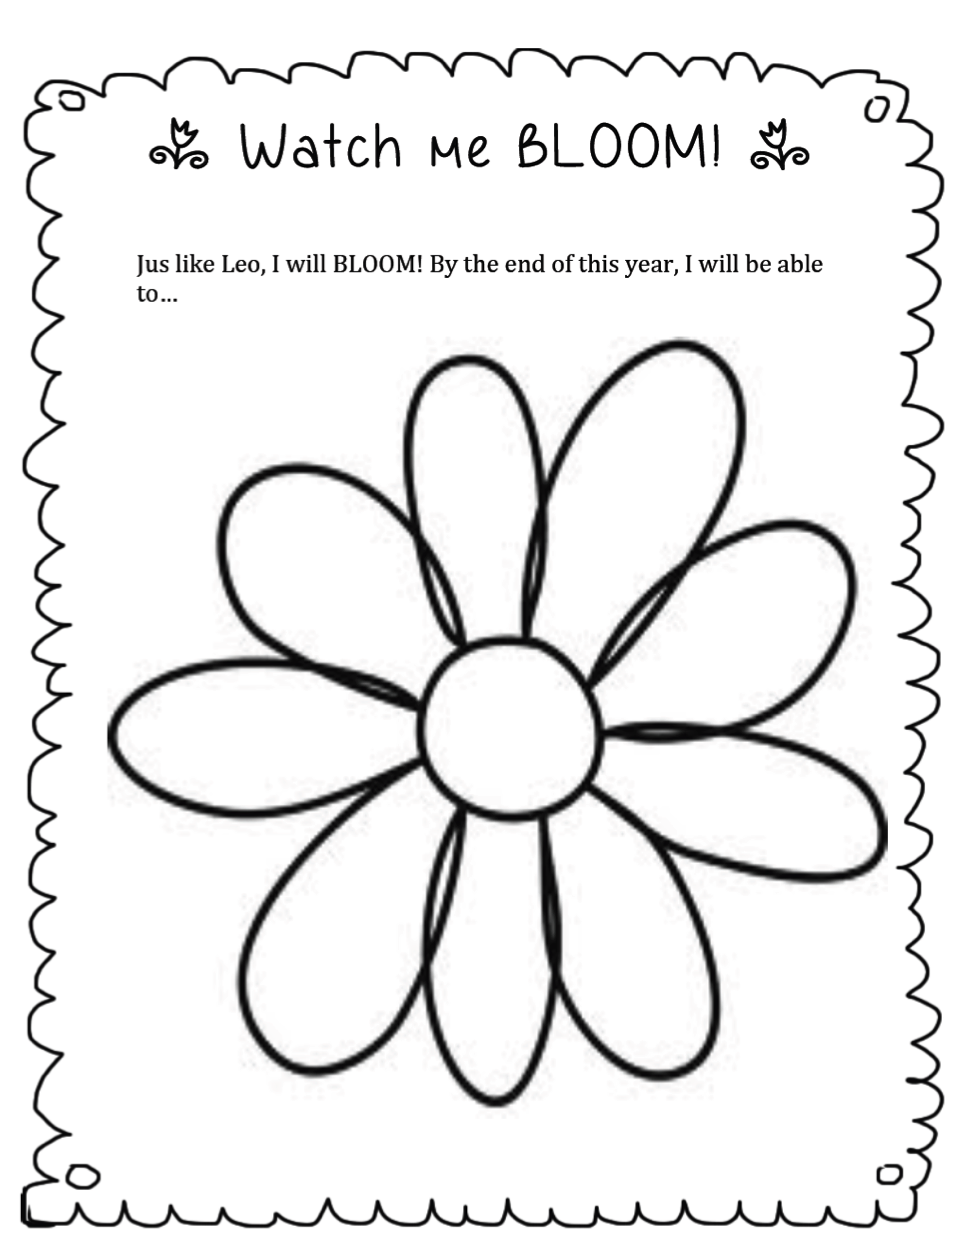 worksheet Horton Hatches The Egg Worksheets workbooks horton hatches the egg worksheets free printable diary of a tech savvy teacher kicking off year with picture worksheets